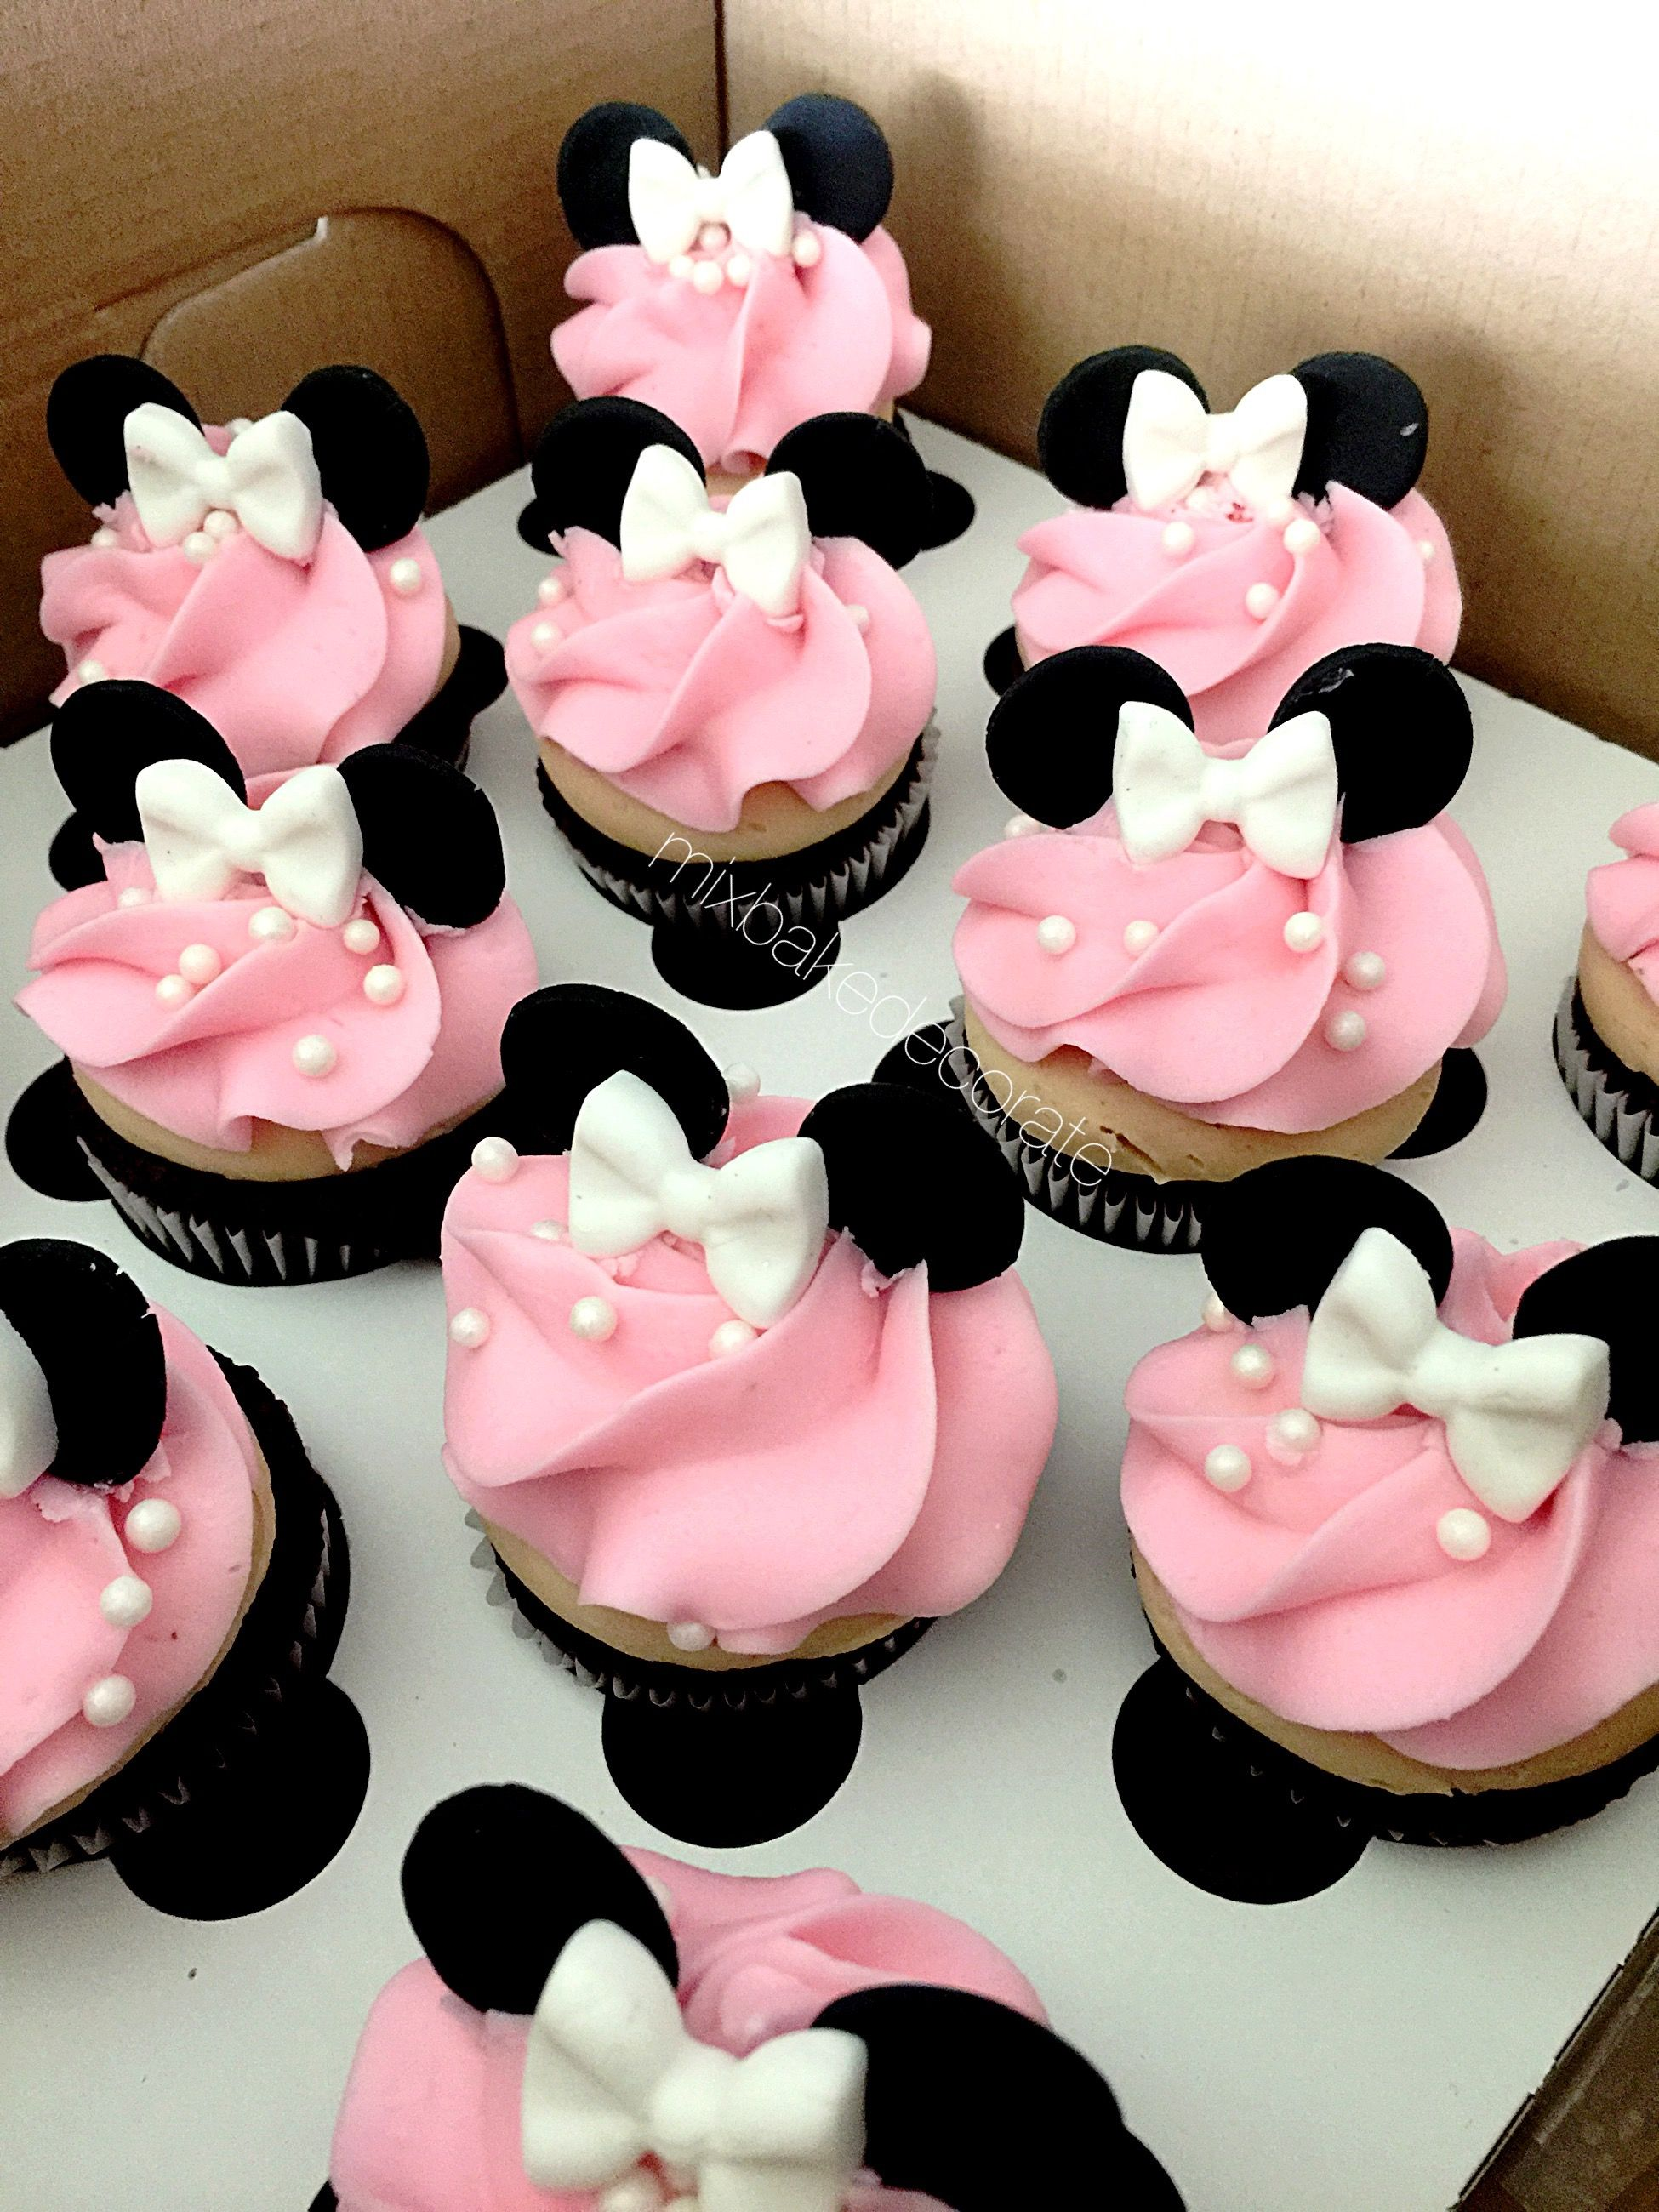 Minnie Mouse Cupcakes | Cupcakes | Pinterest | Minnie ...